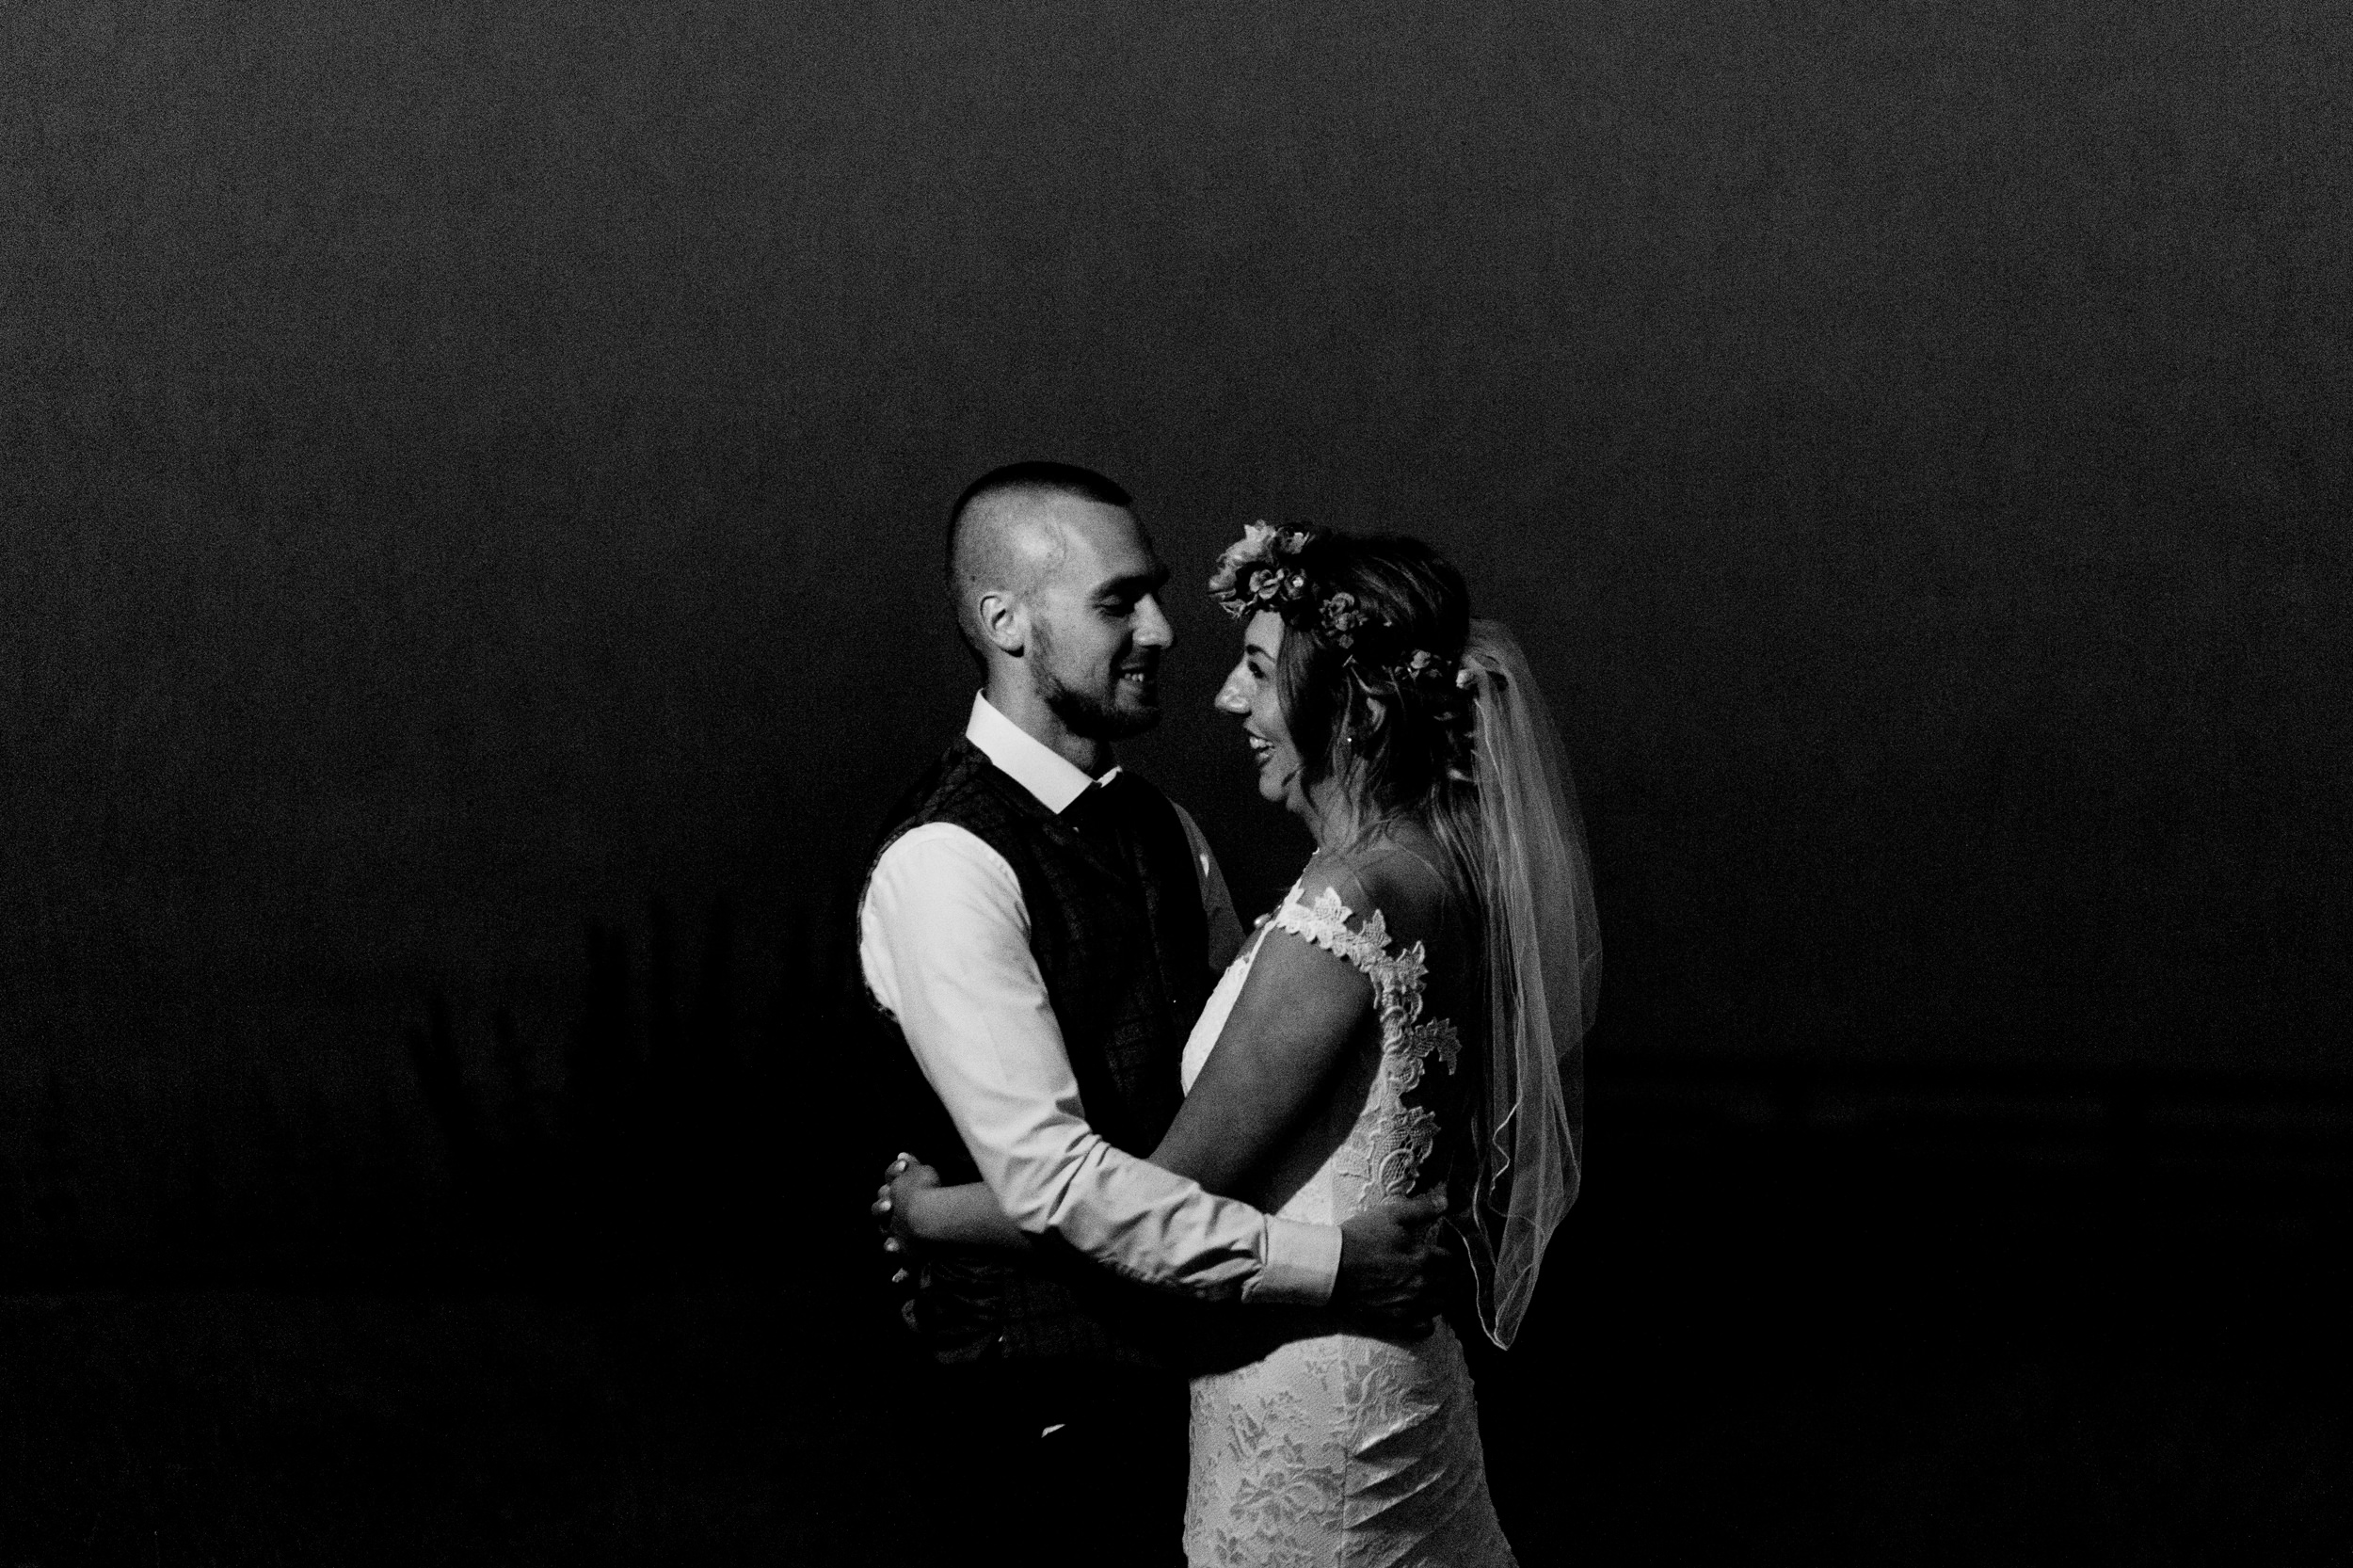 wedding portrait in misty darkness. esk valley wedding photography by emma and rich.